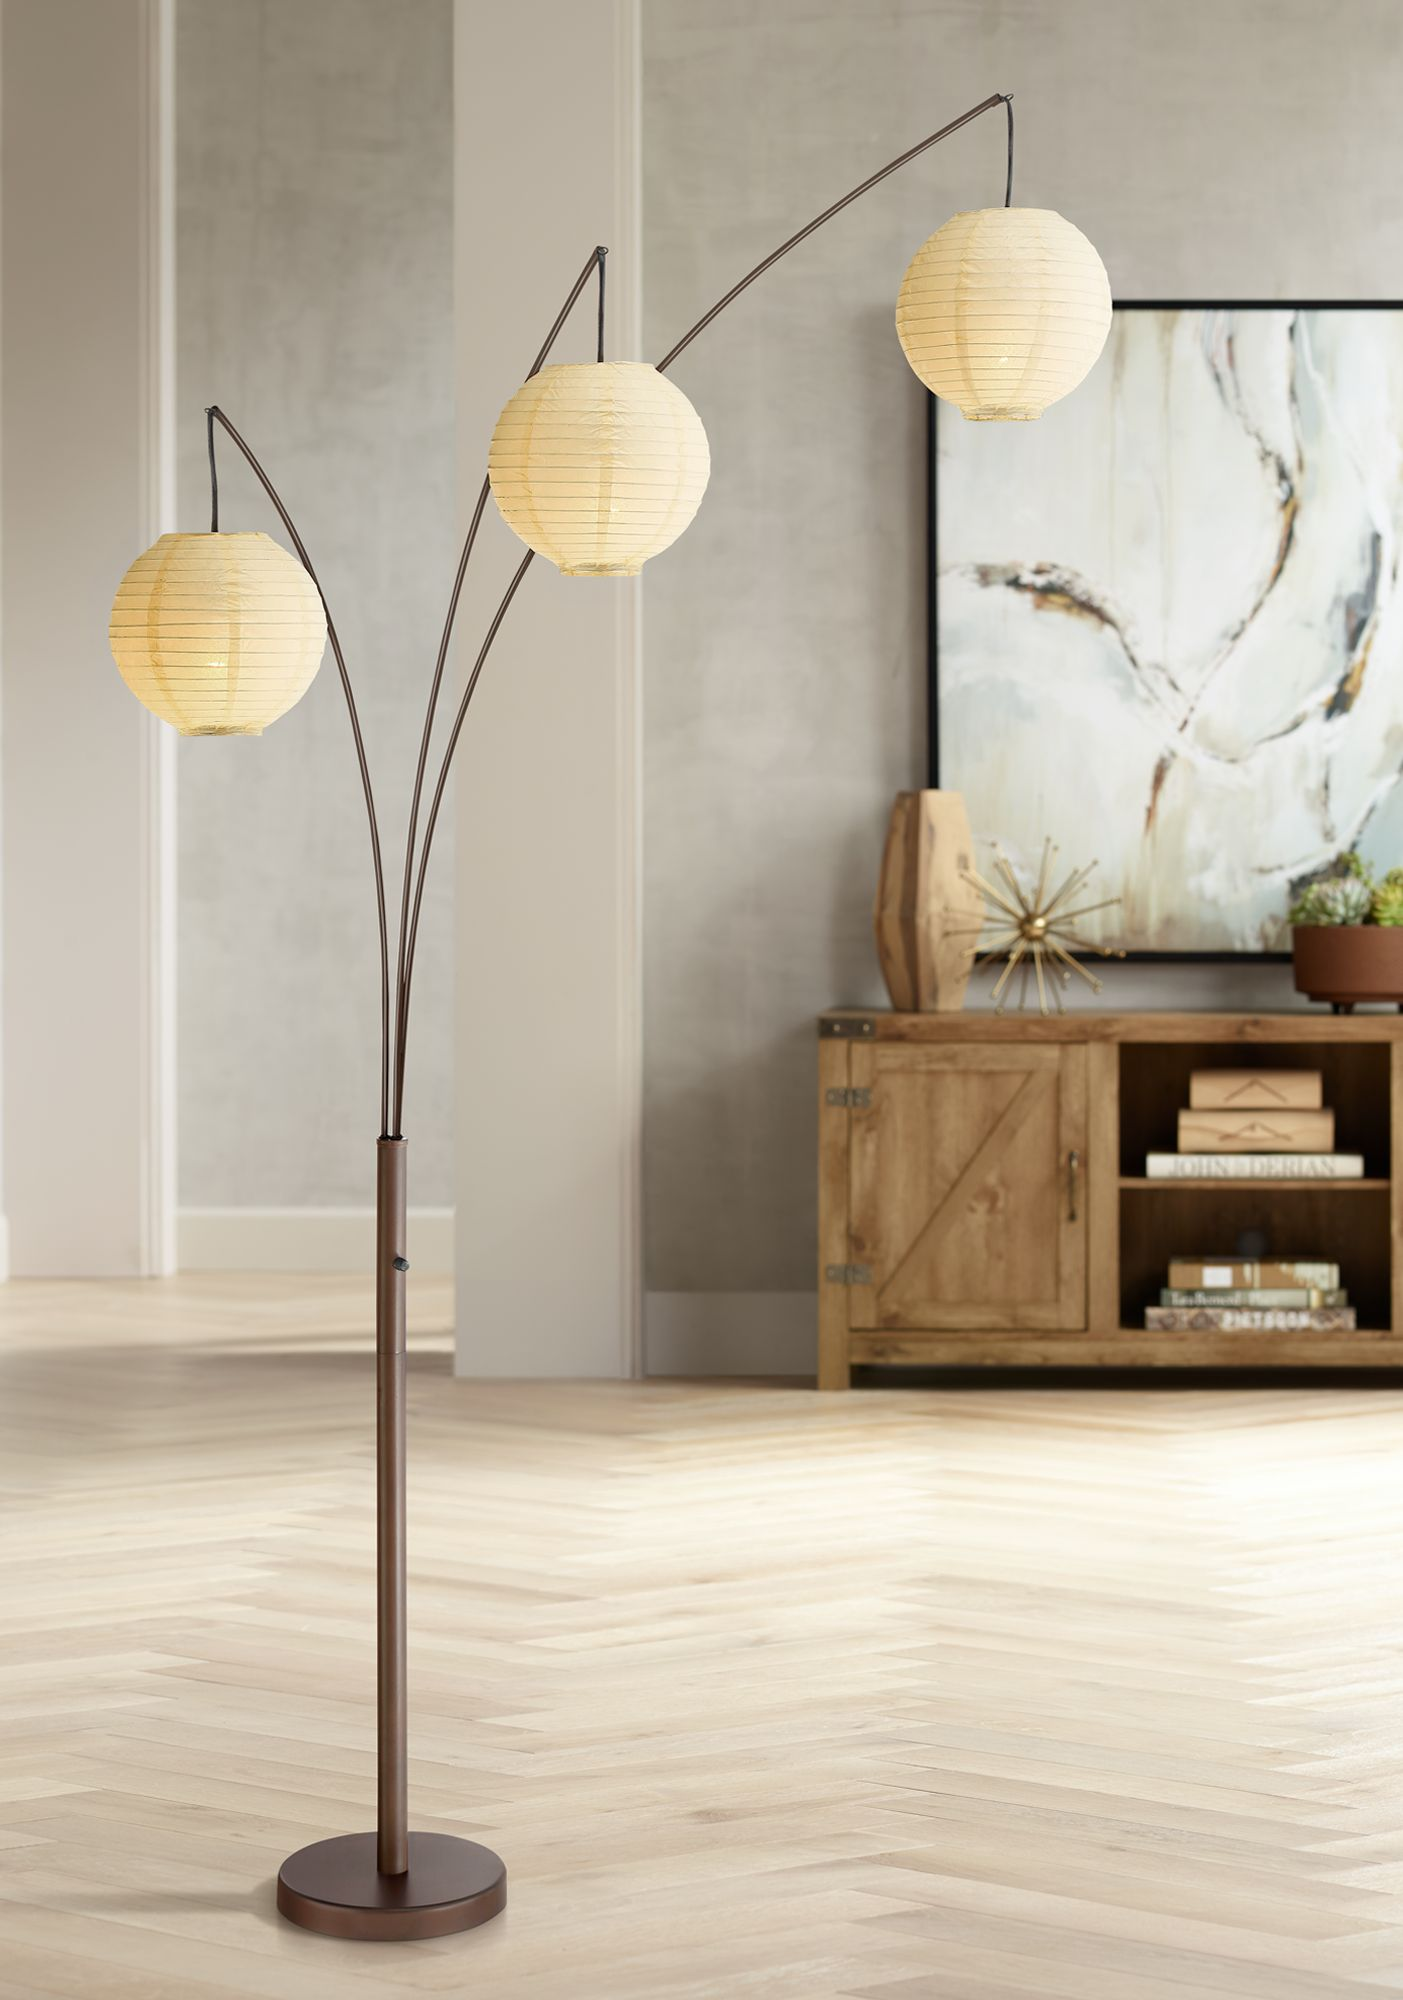 Marvelous Jojo Bronze Arc Floor Lamp With 3 Paper Lantern Shades